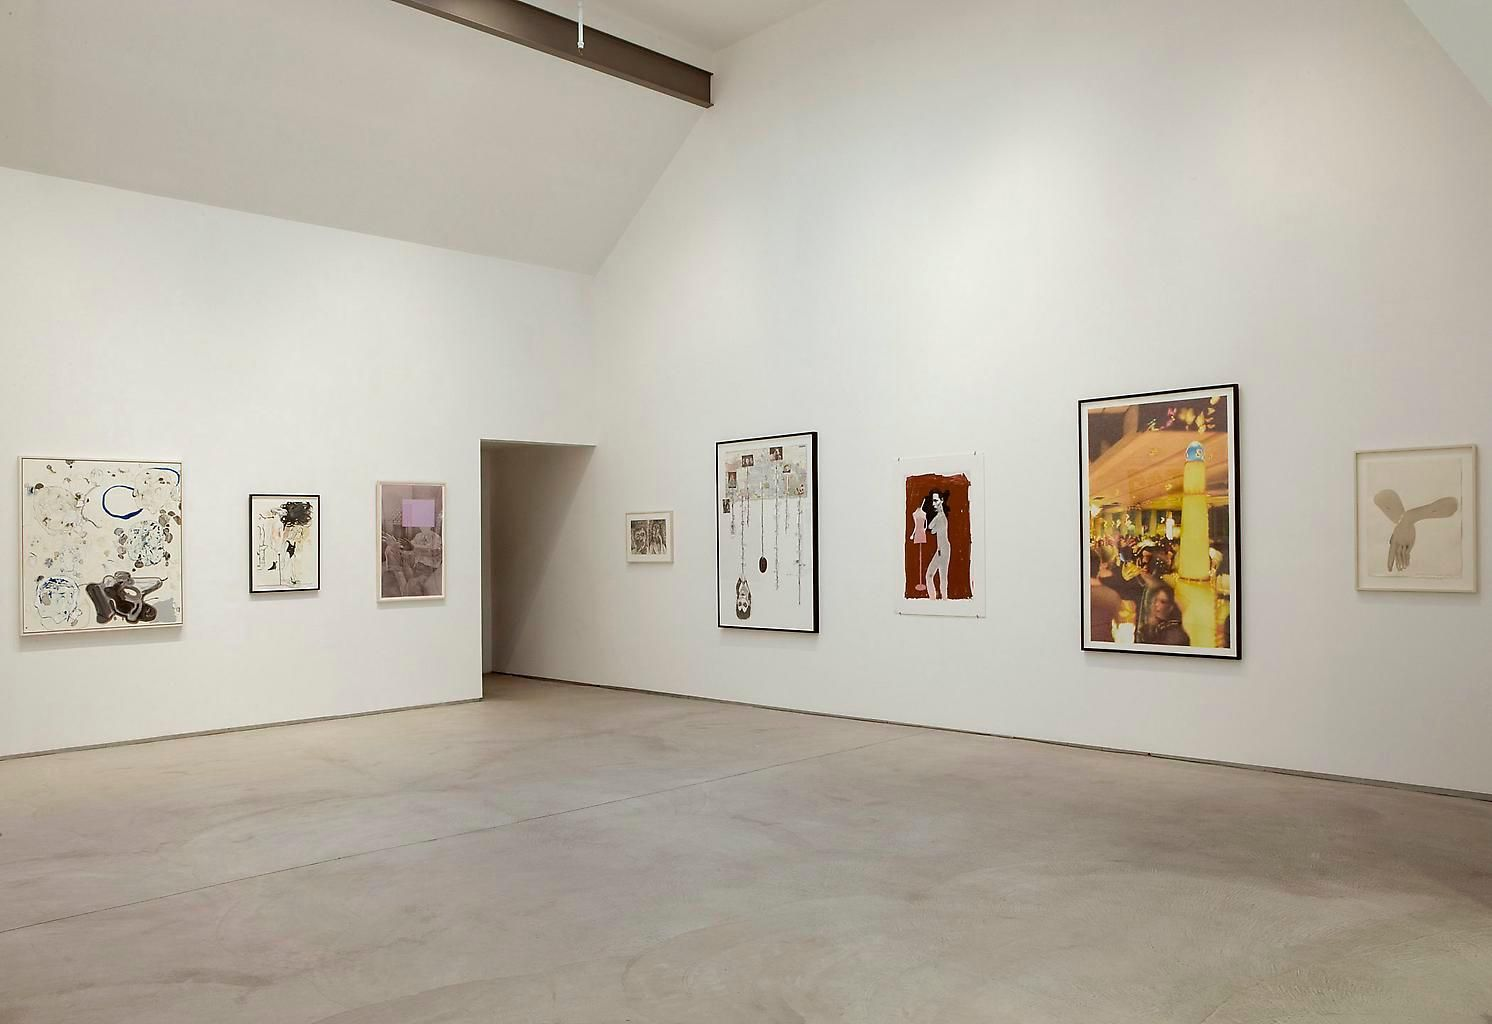 Installation view, Faces and Figures (Revisited), Marc Jancou, New York, September 12 - October 25, 2008